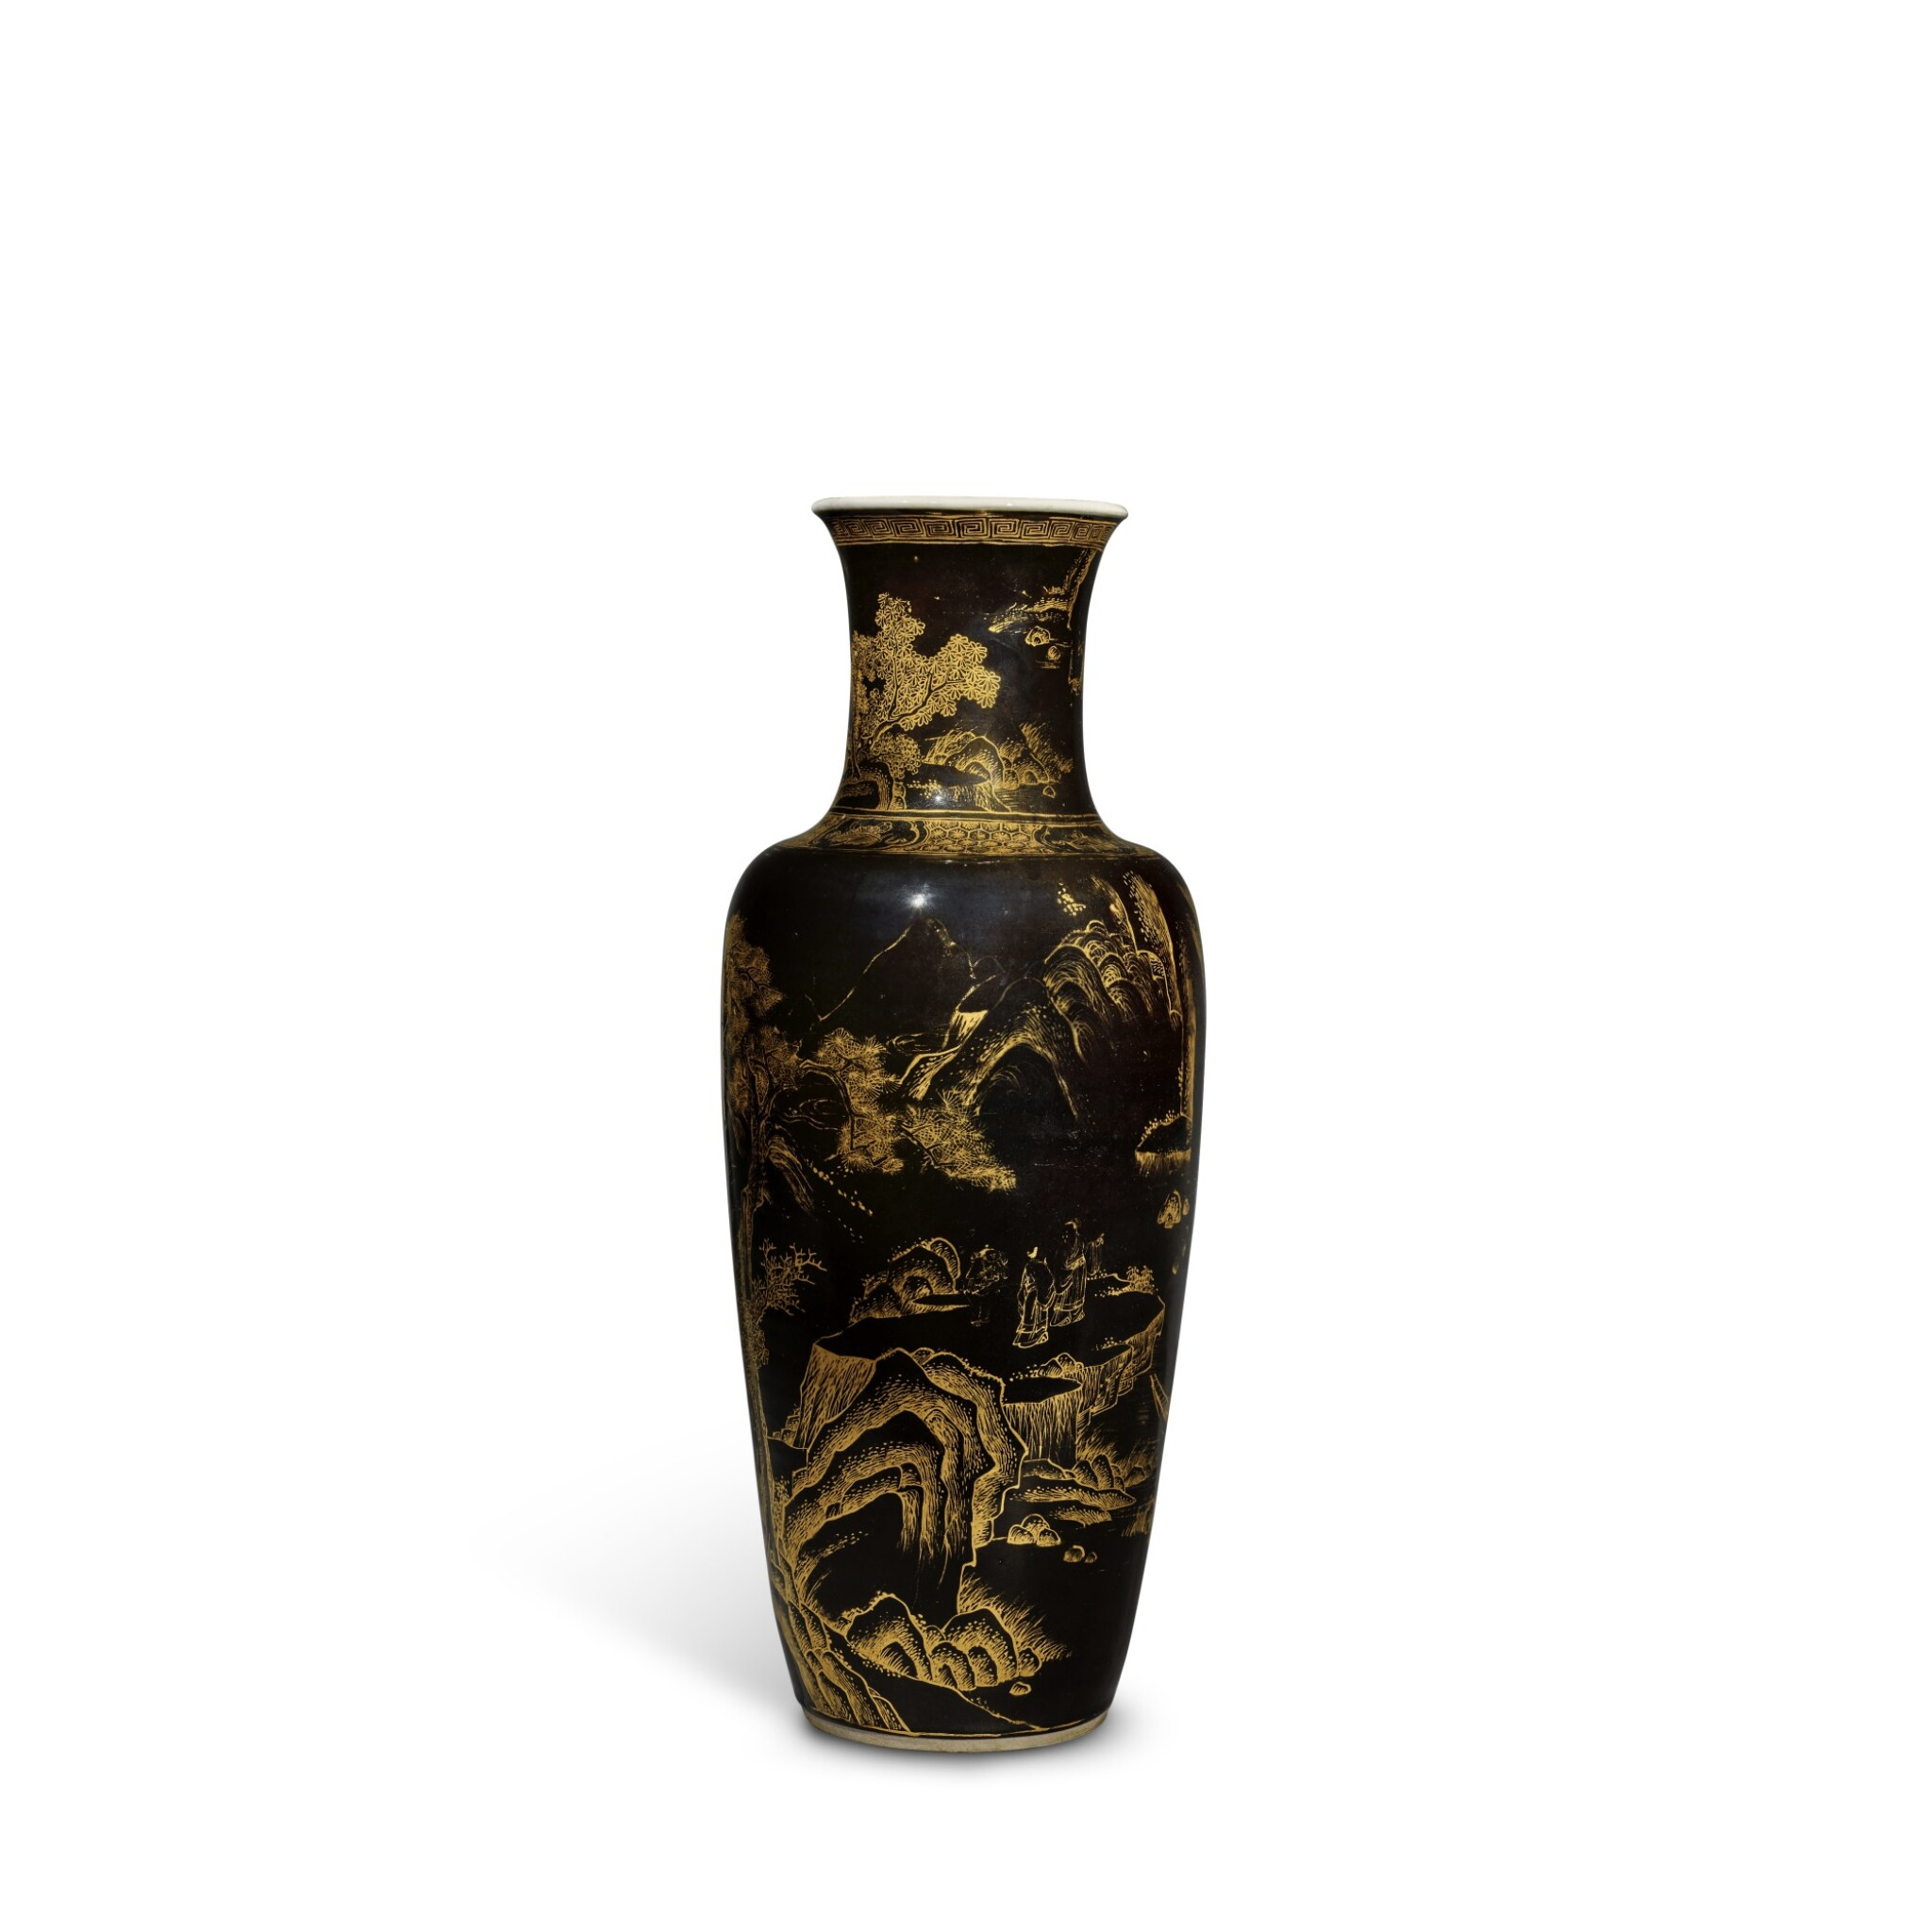 View full screen - View 1 of Lot 203. A mirror-black-glazed and gilt-decorated 'landscape' vase, Qing dynasty, 19th century | 清十九世紀 烏金釉描金山水人物圖瓶.